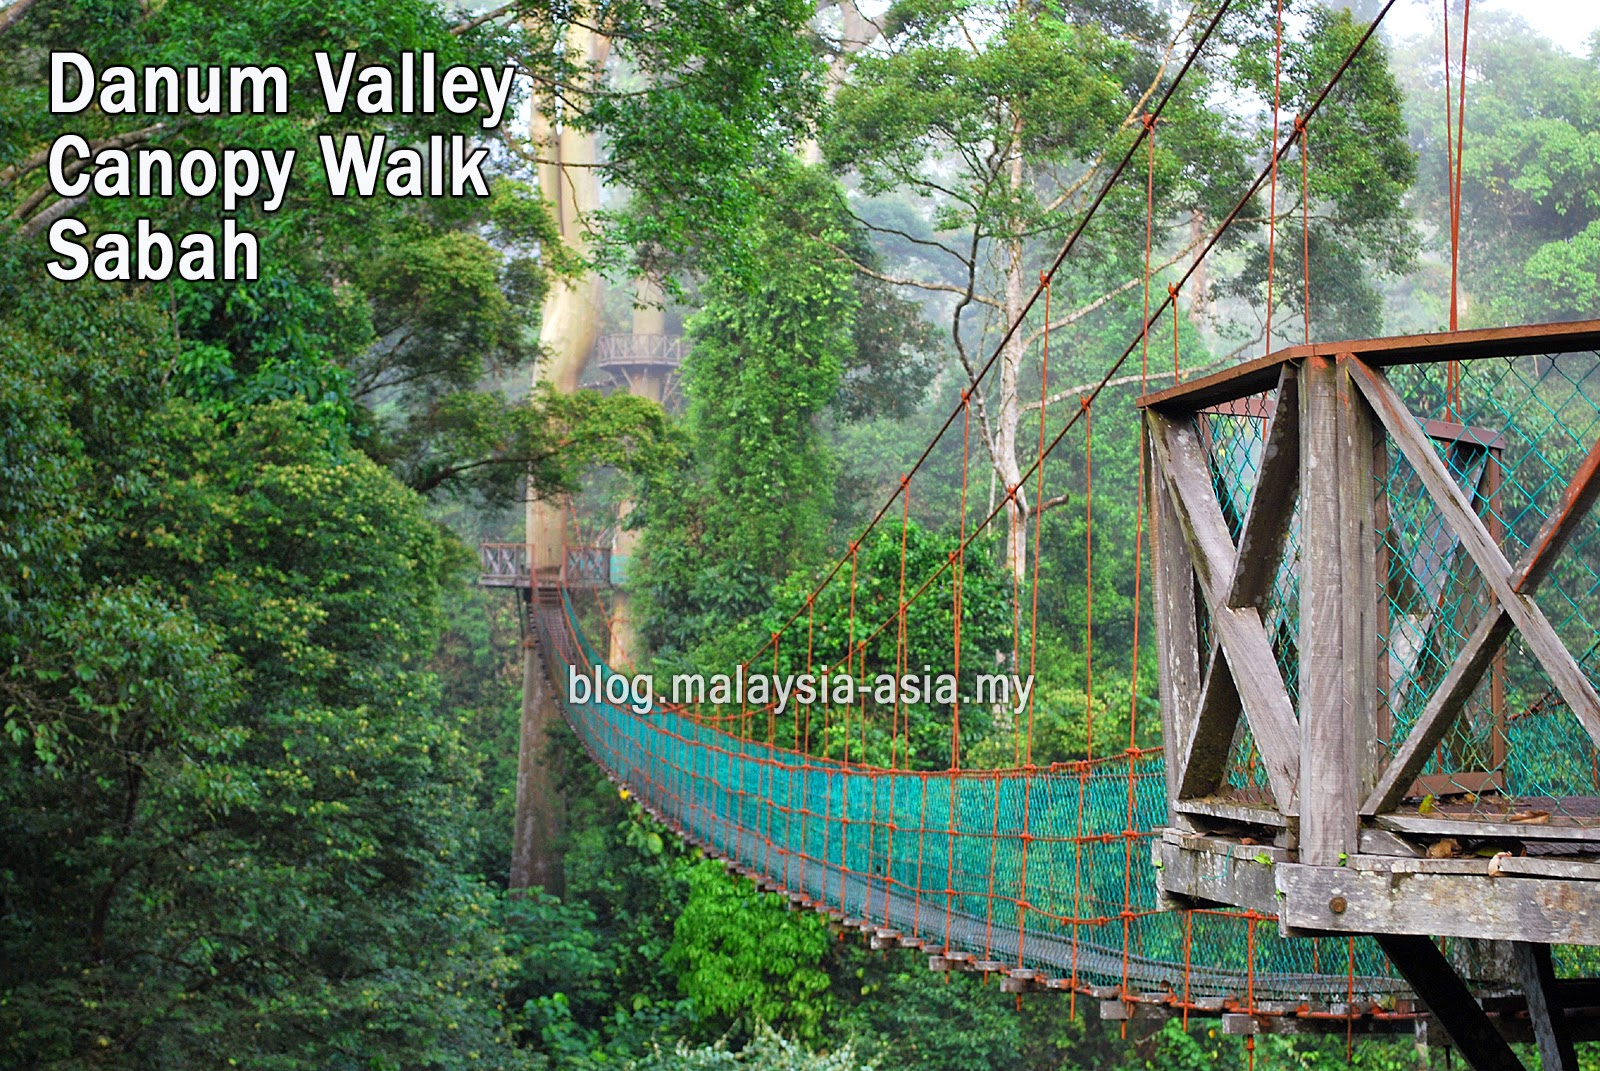 Sabah Danum Valley Canopy Walk & Canopy Walks in Malaysia - Malaysia Asia